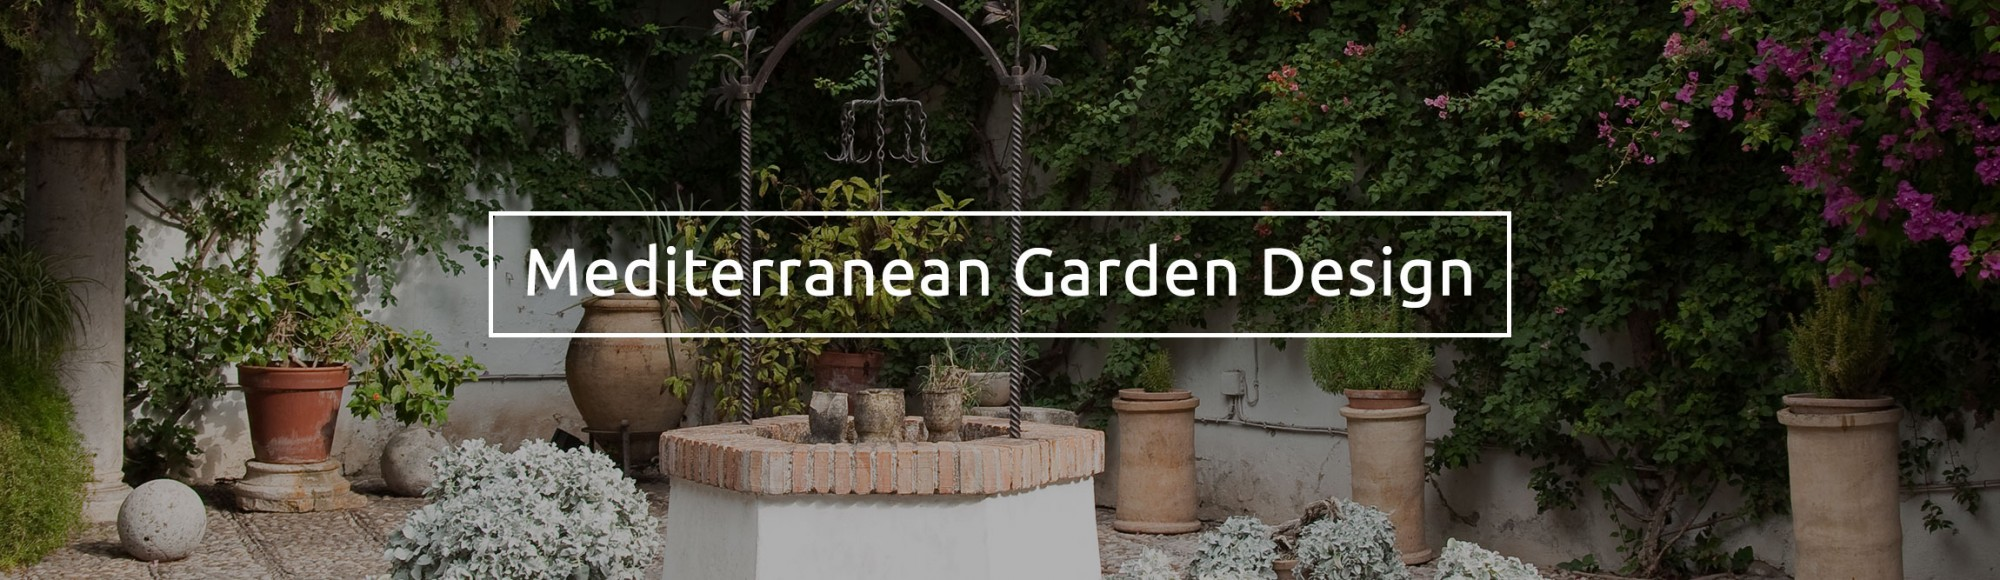 David Domoney Mediterranean Garden Design